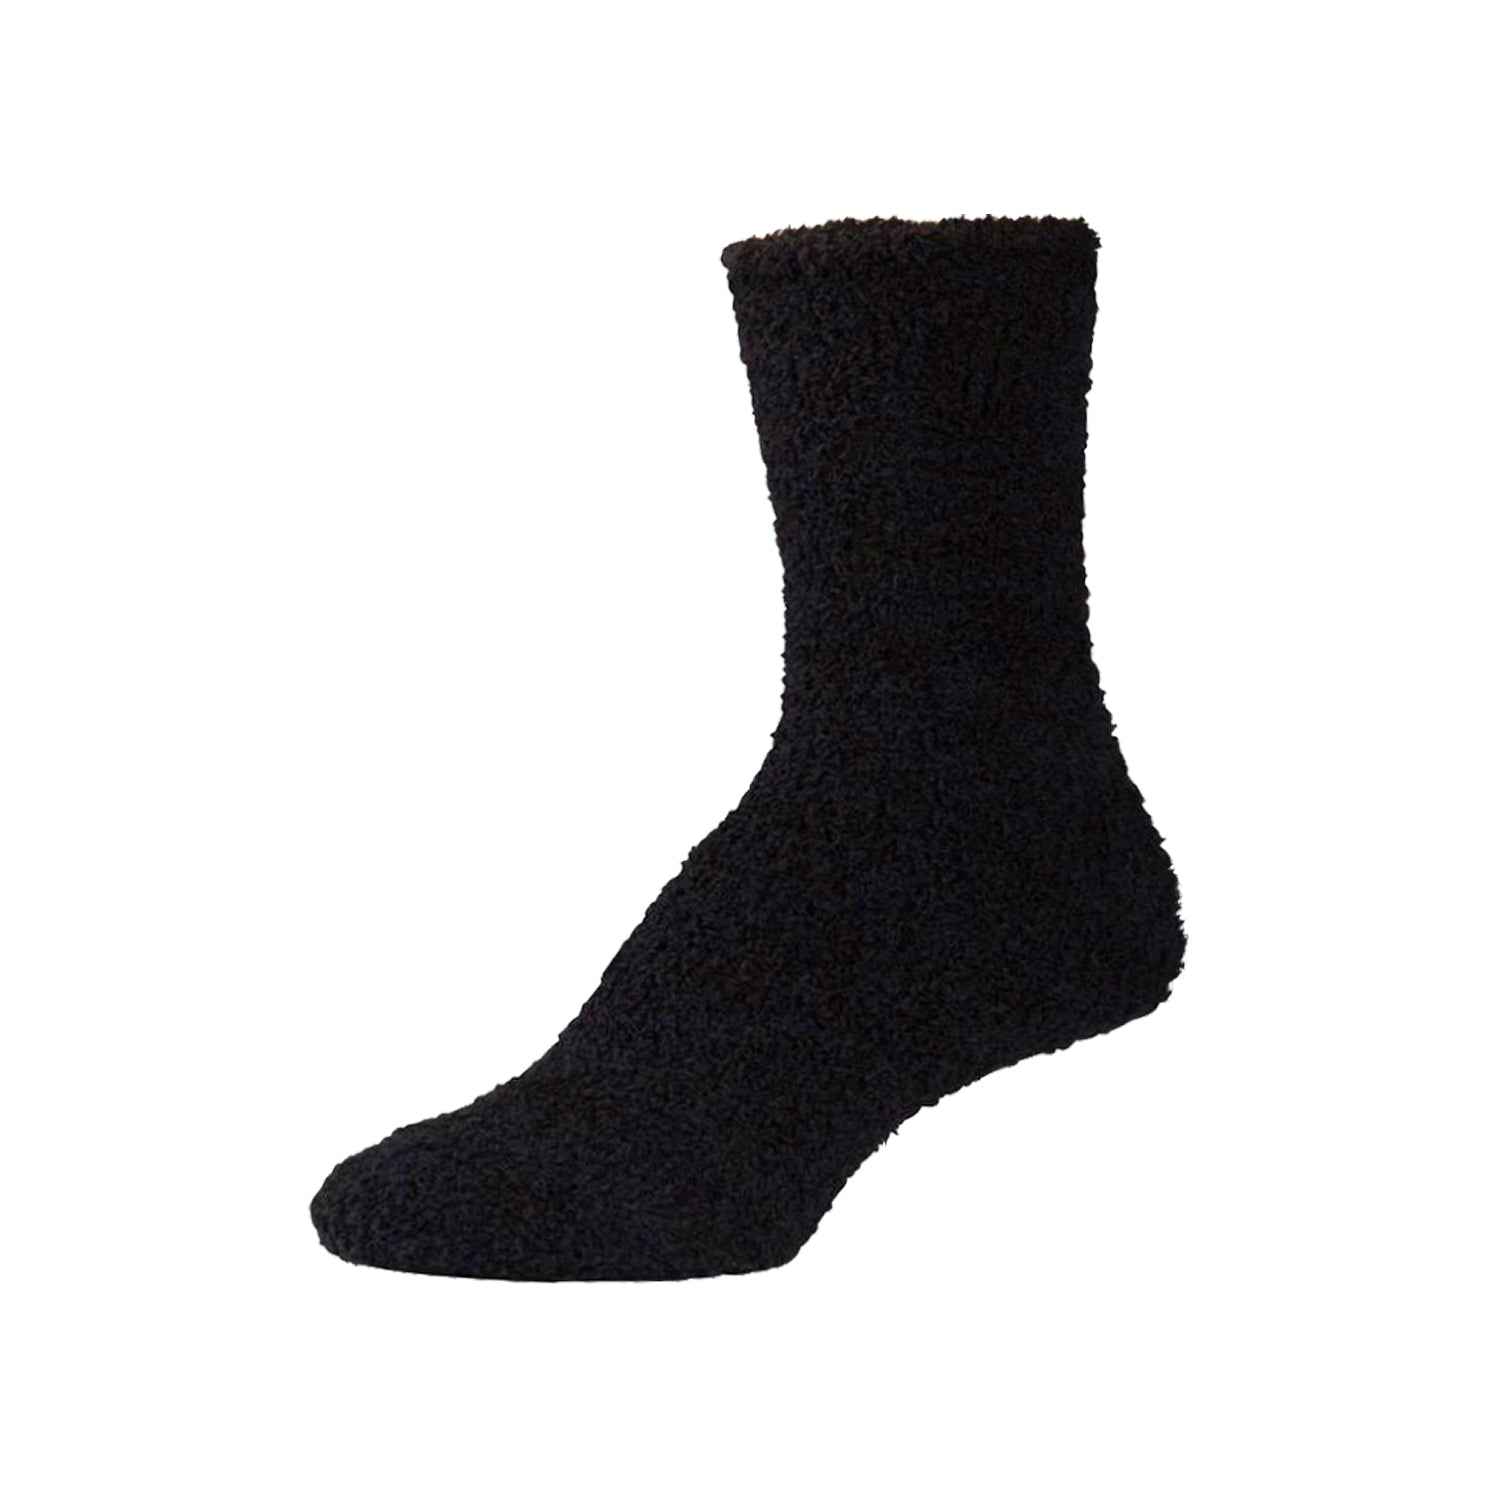 Womens Fluffy Black Fuzzy Socks